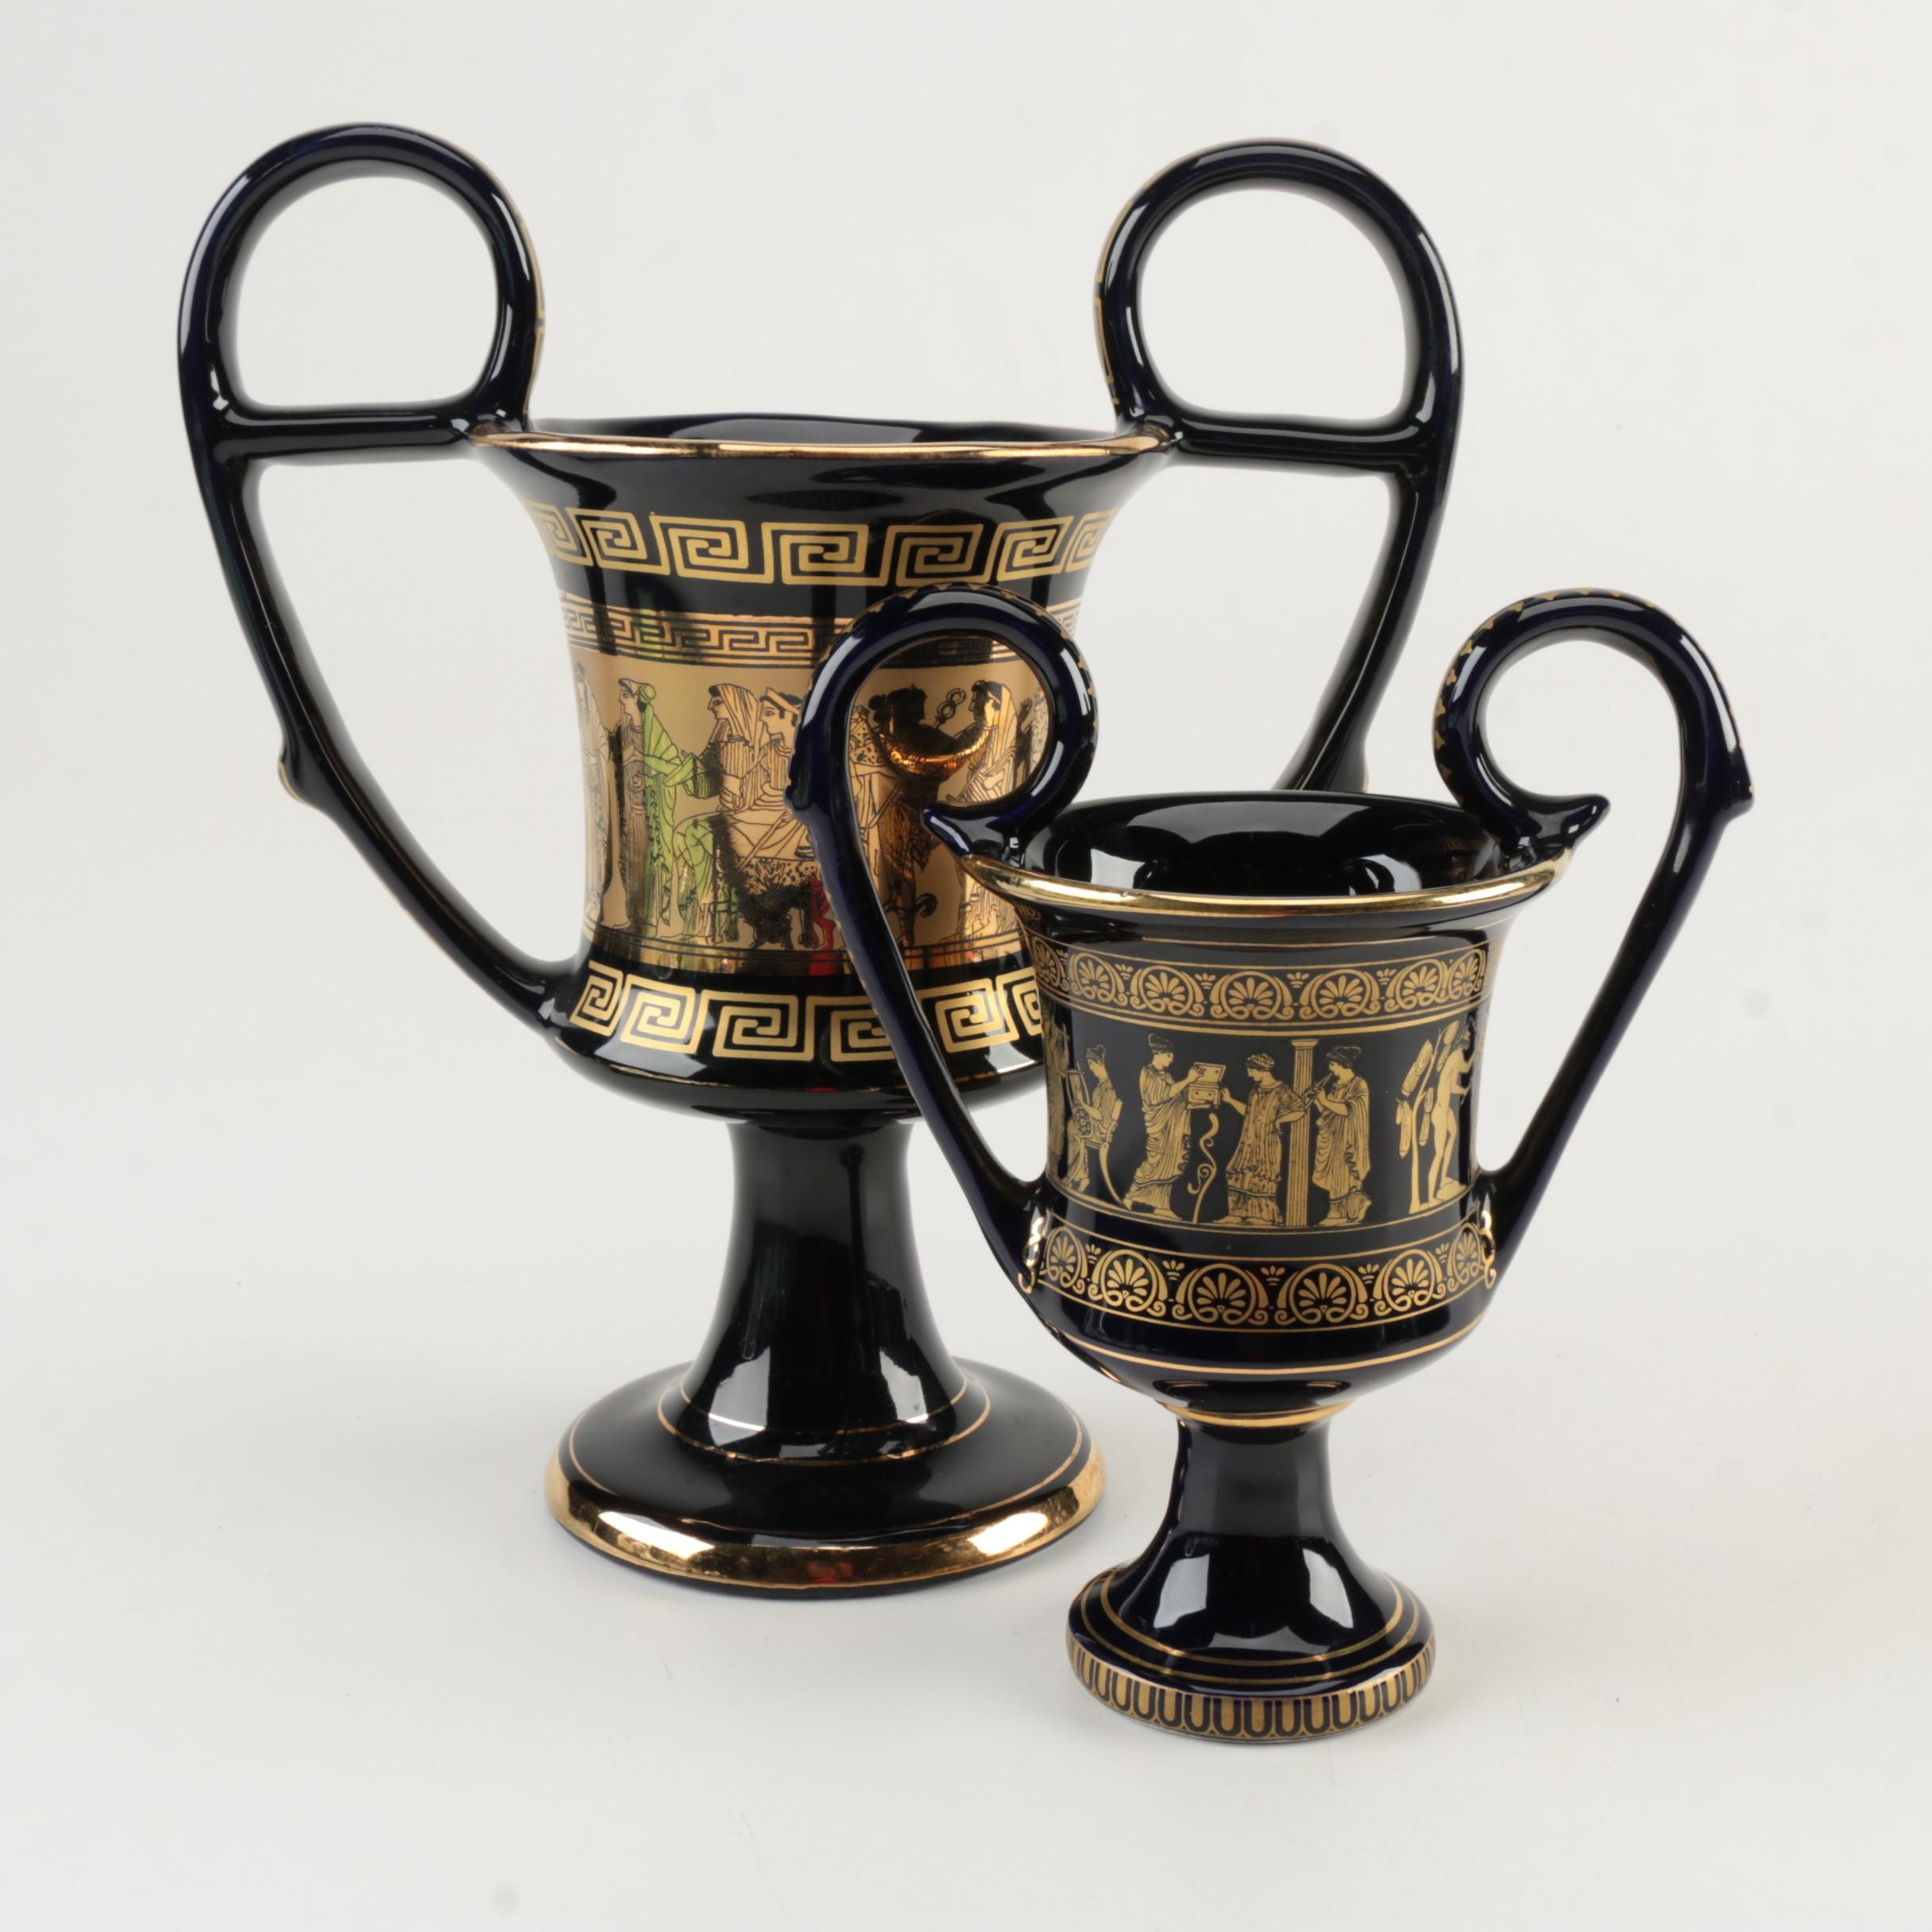 Handmade Greek Vases with 24K Gold Trim